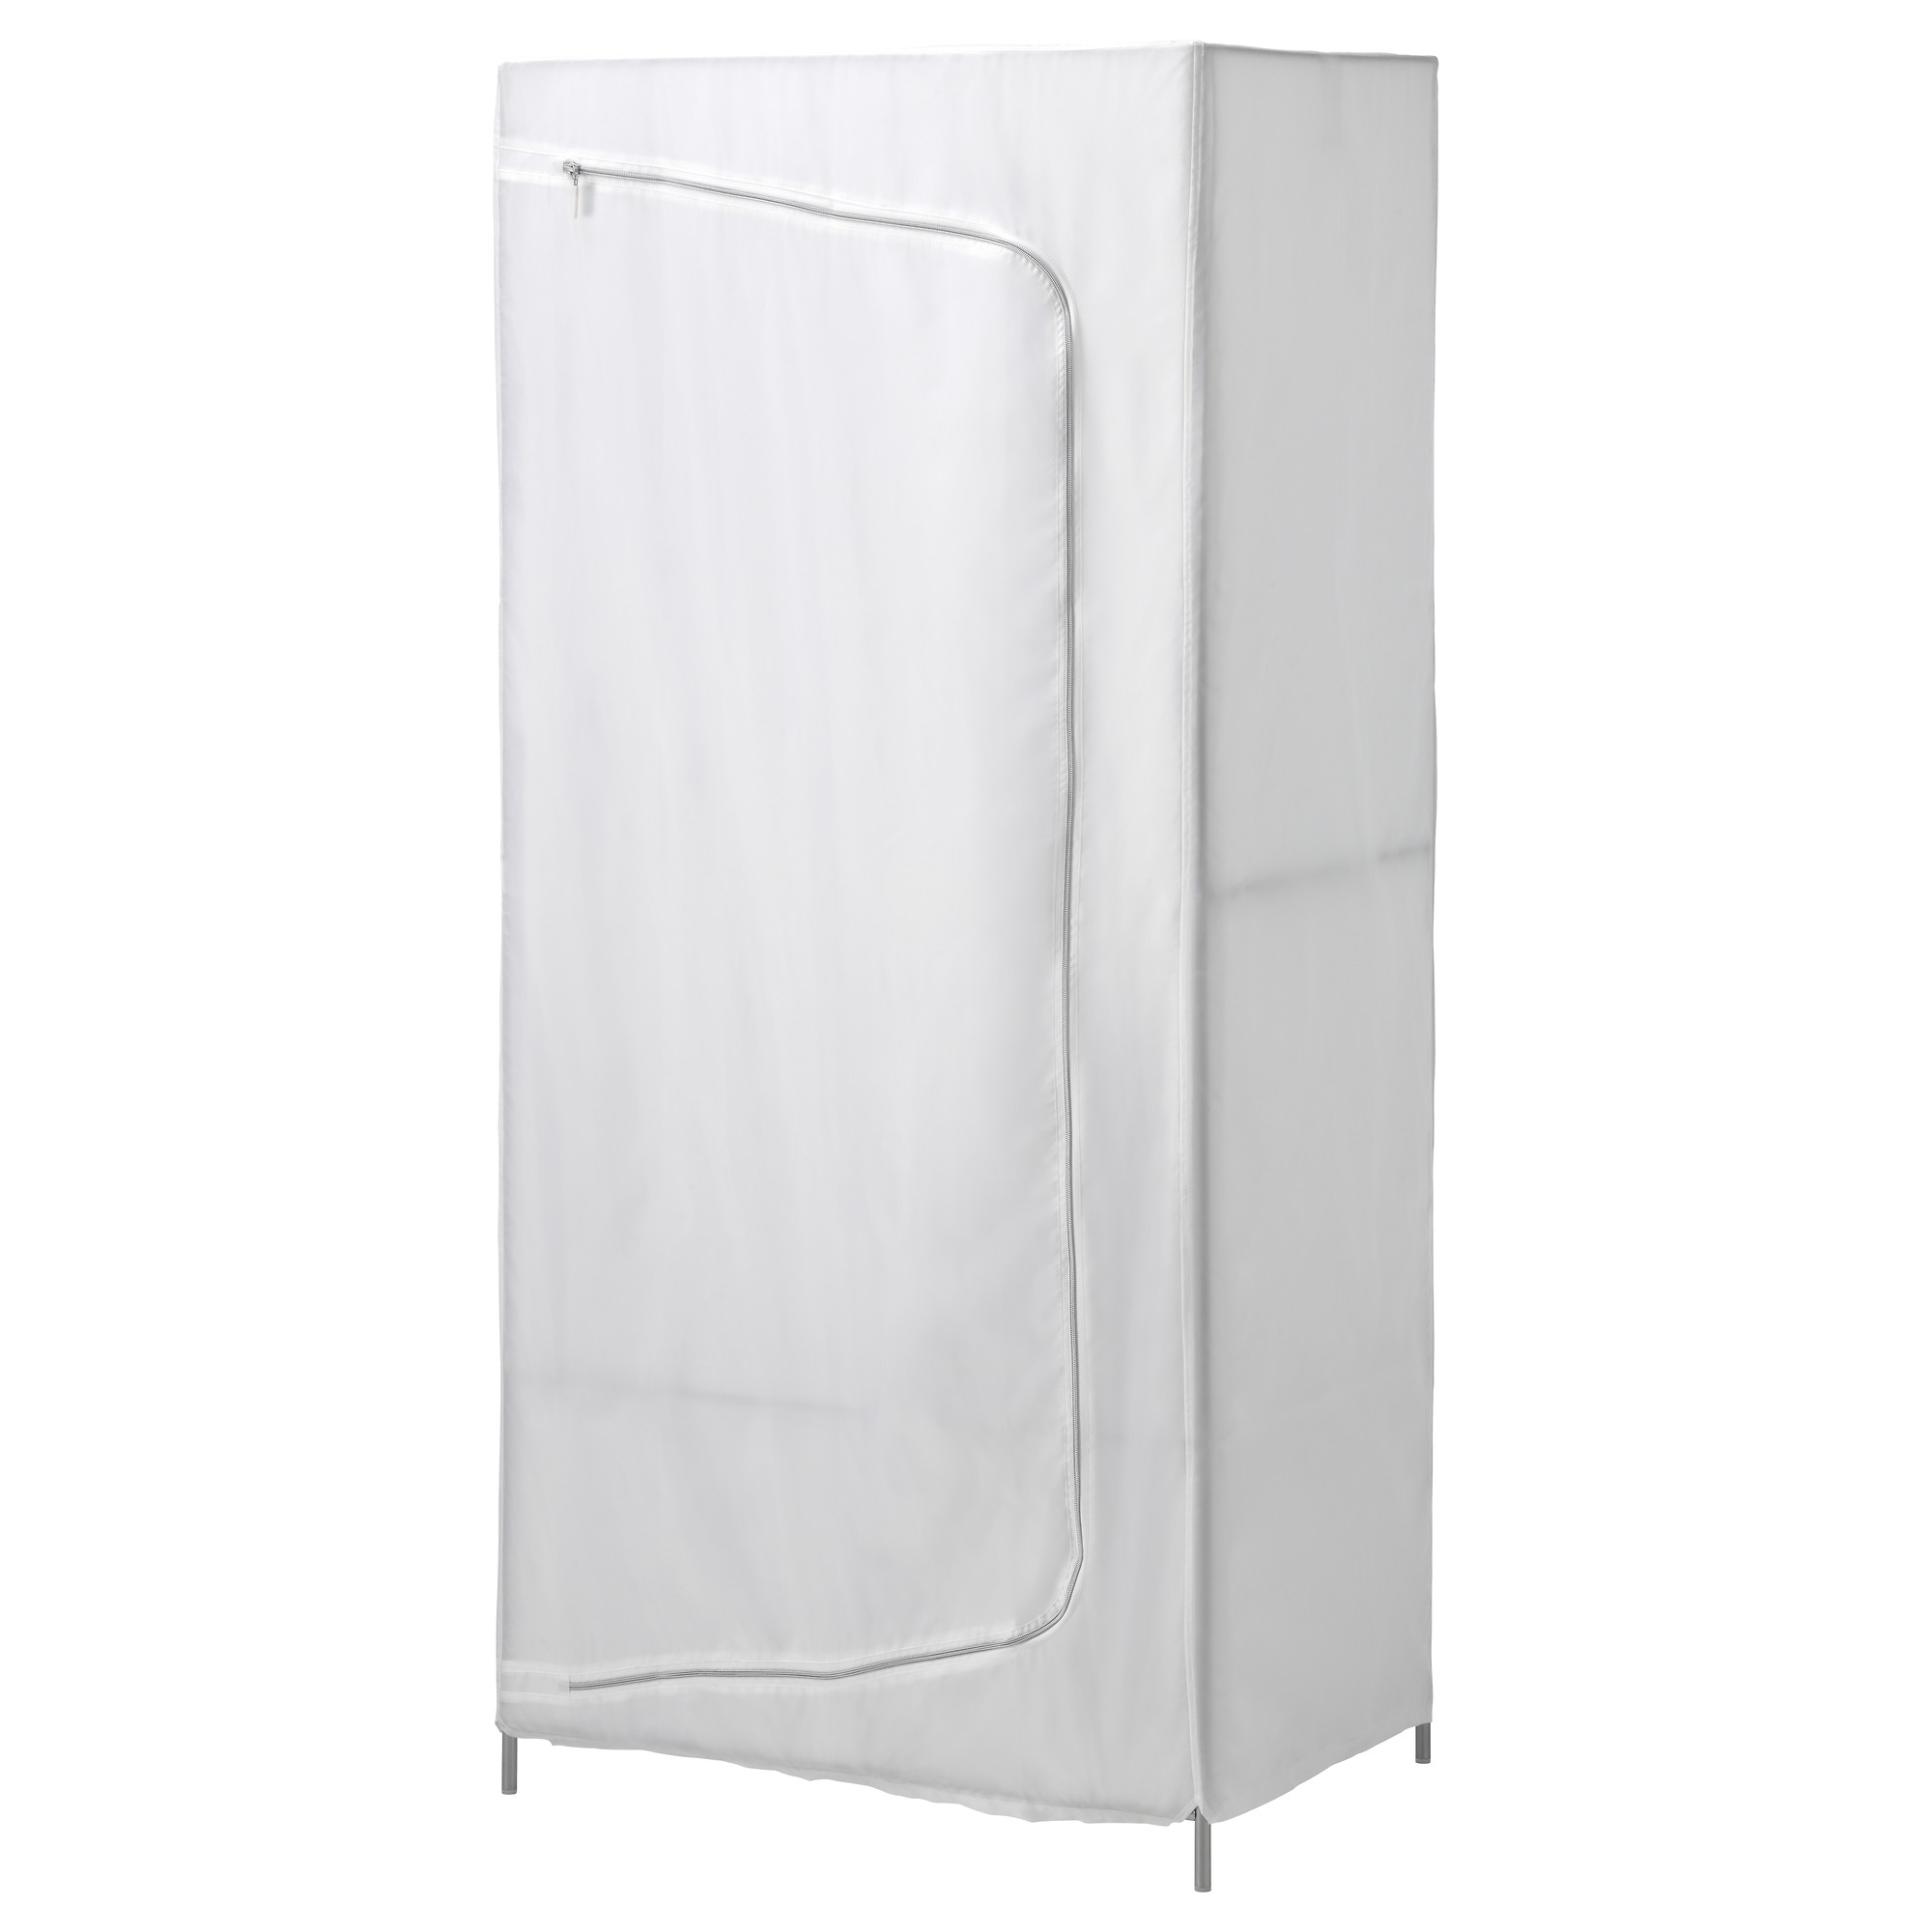 Unique Inter IKEA Systems B.V. 1999 - 2017 | Privacy Policy portable wardrobe ikea